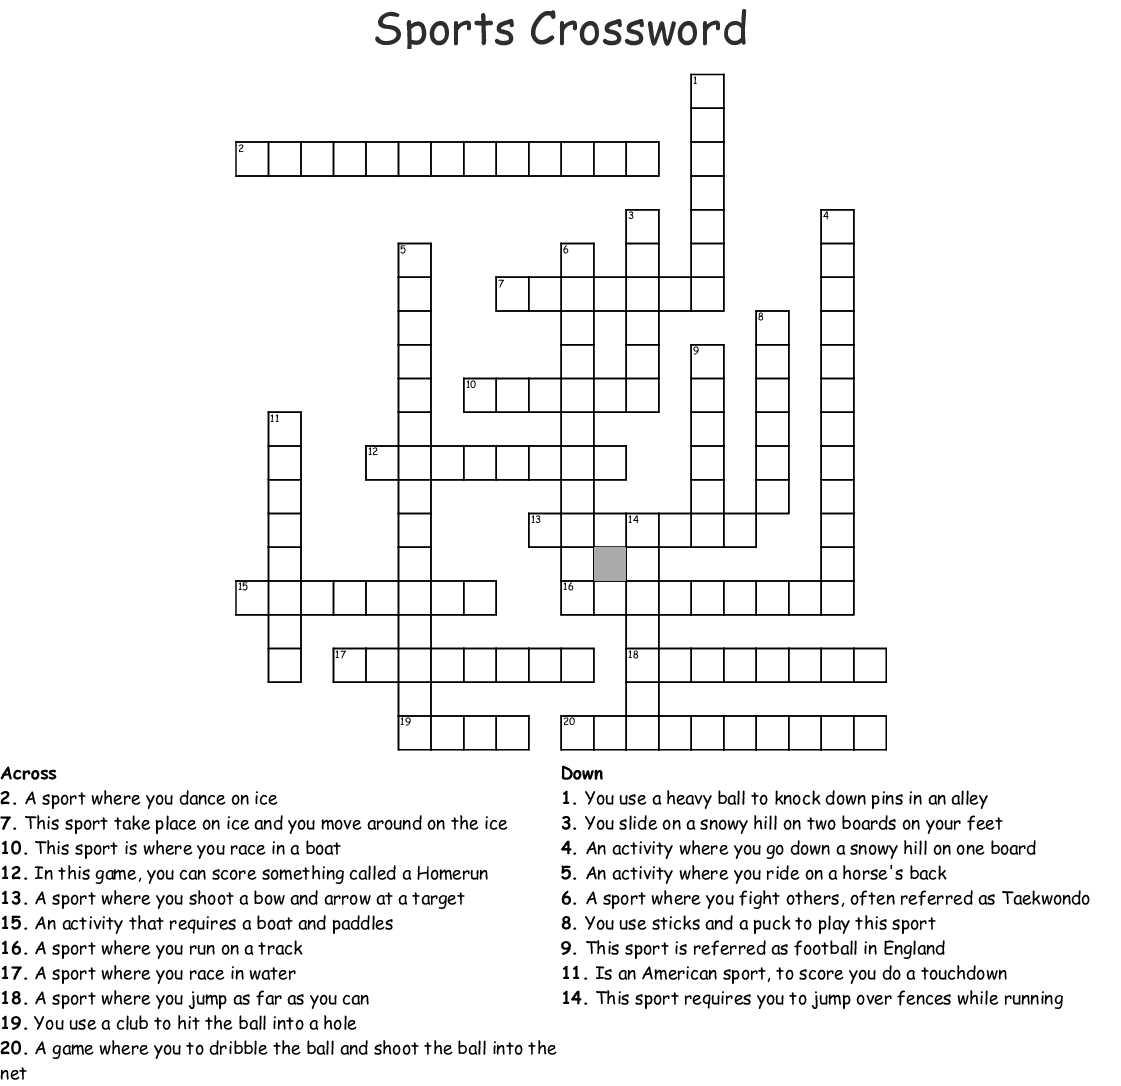 picture about Sports Crossword Puzzles Printable called Sporting activities Crossword - WordMint